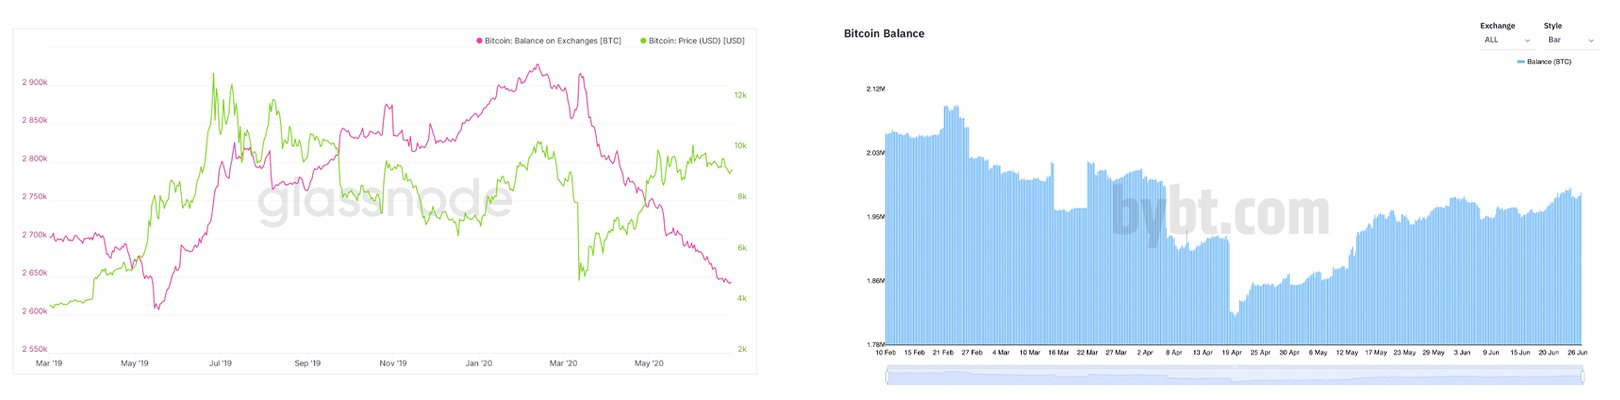 Despite BTC's Price Drop, Bitcoin Held on Exchanges Is 28% Lower Than Last Year